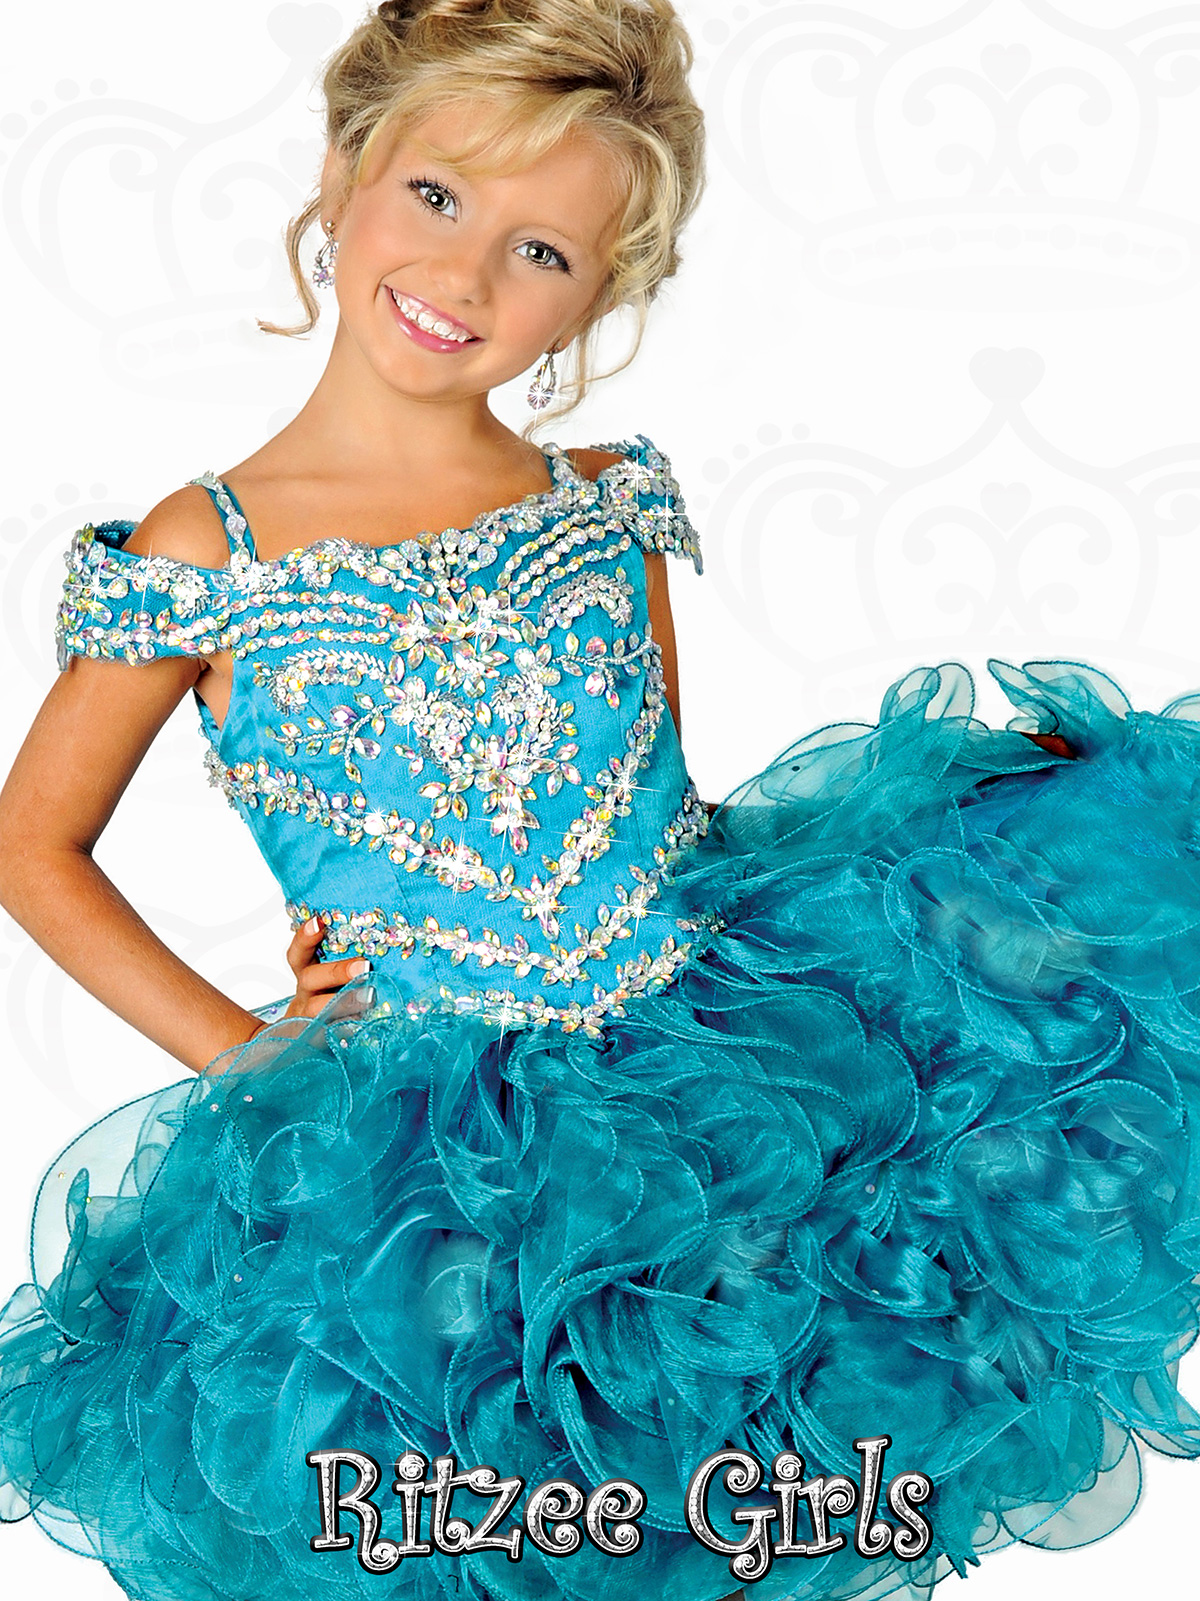 Ritzee Girls Cupcake Pageant Dresses: PageantDesigns.com